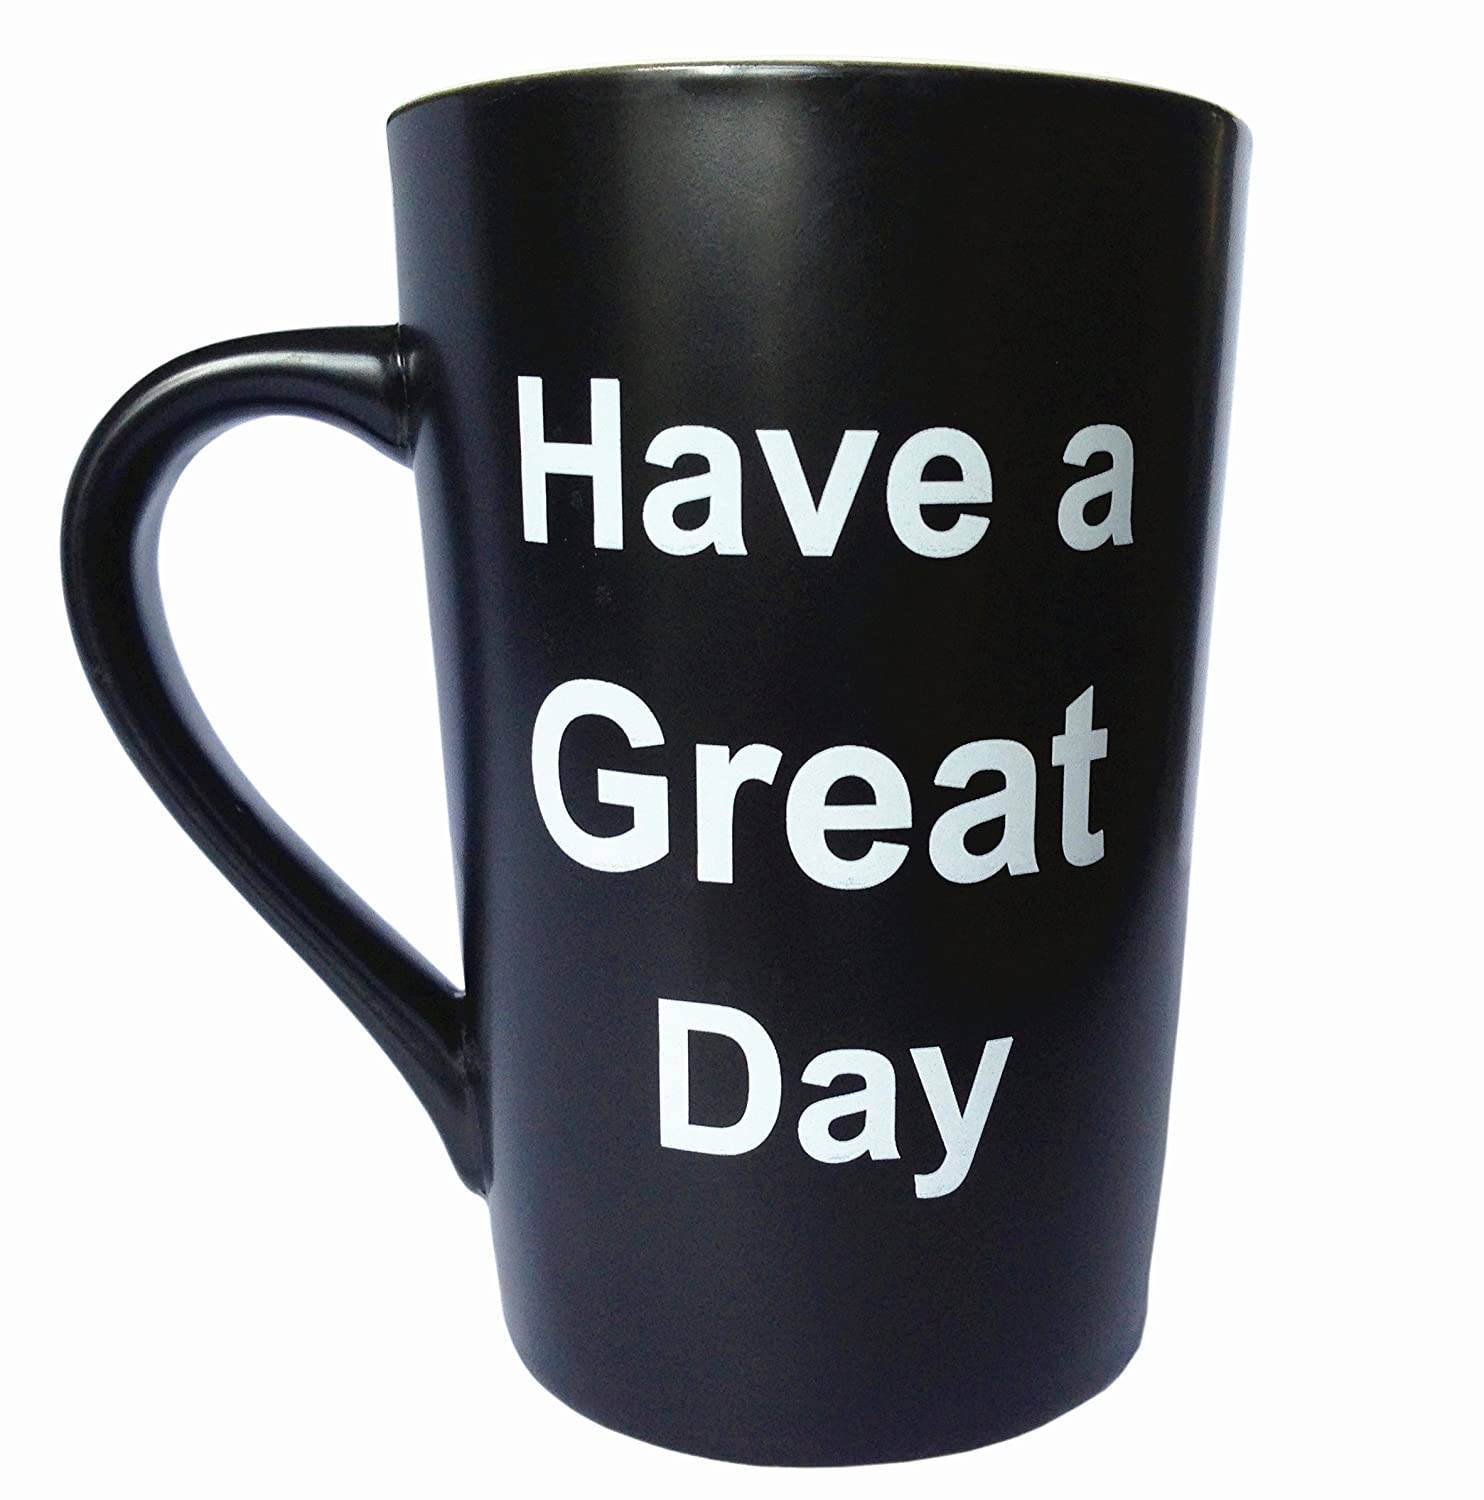 Porcelain Coffee Mug Have a Great Day with Finger on the Bottom Cute Cool Ceramic Cup Black MAUAG Funny Unique Christmas Gifts 13 Oz Best Father/'s Day and Mother/'s Day Gag Gifts LT great mug black-1 Best Fathers Day and Mothers Day Gag Gifts